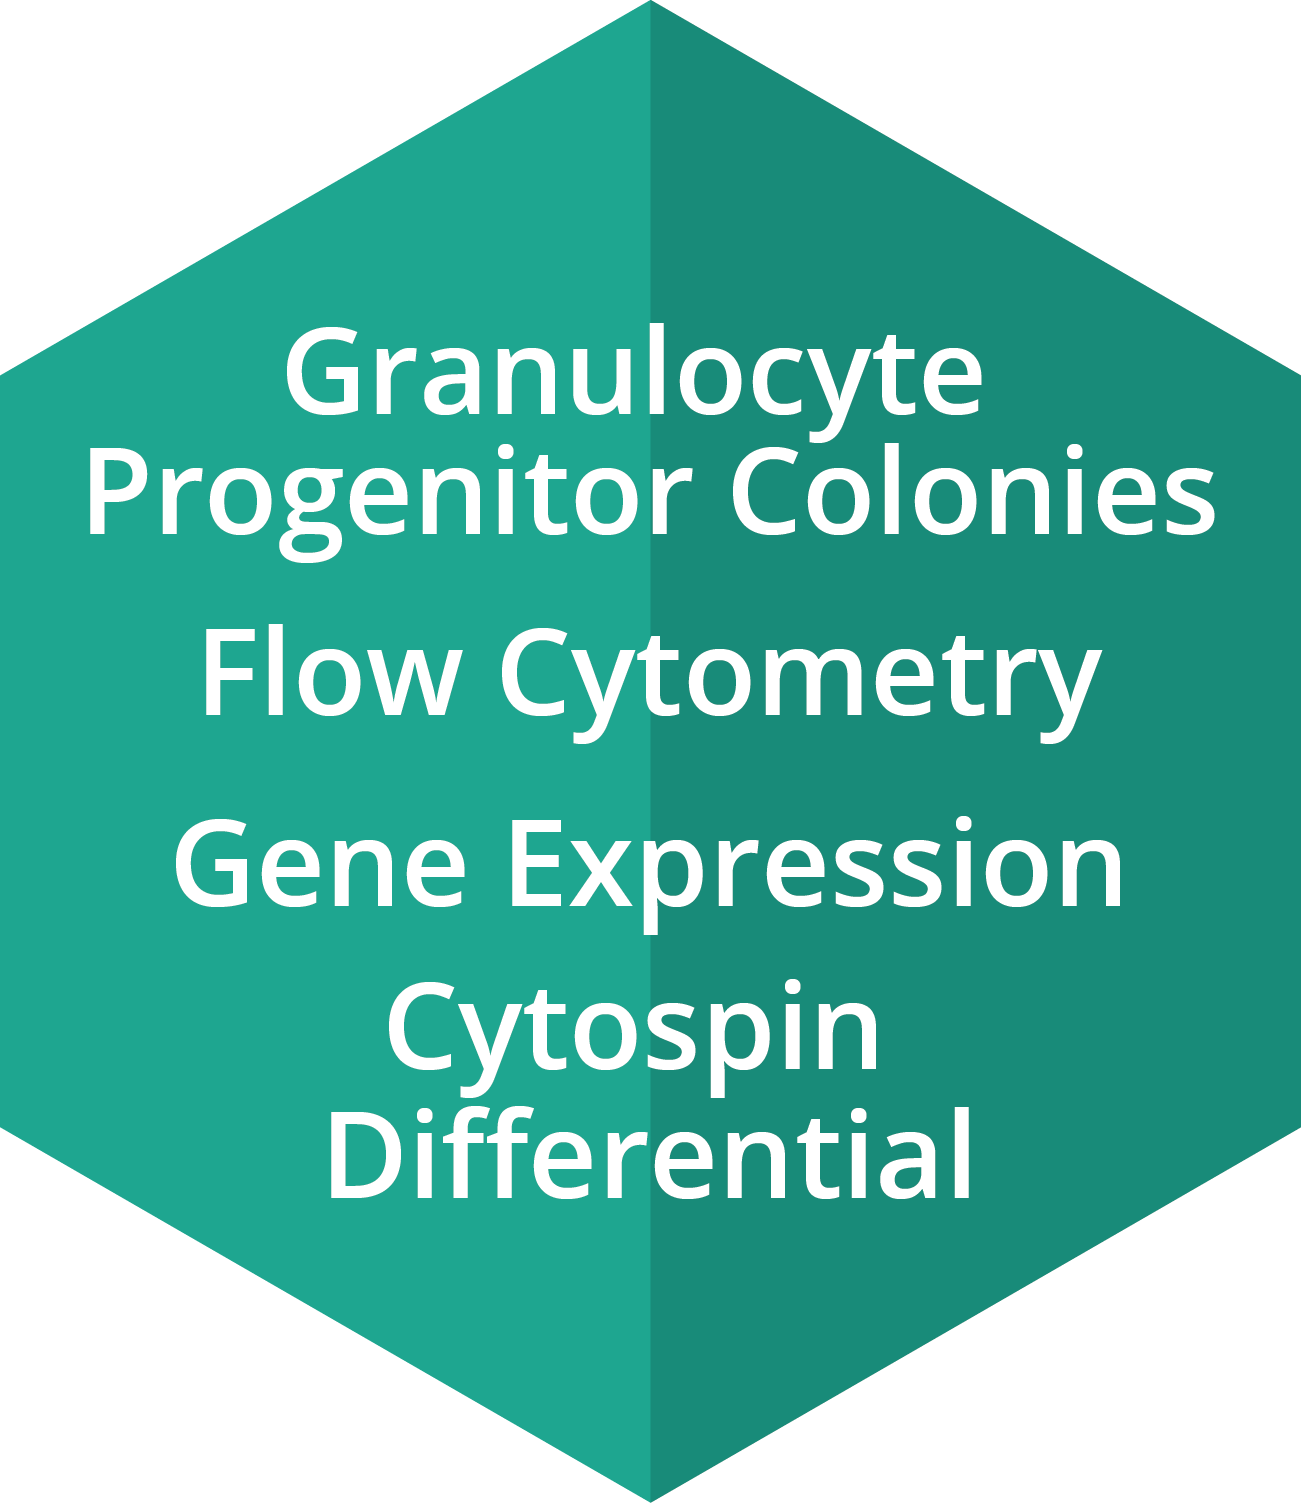 Granulocyte Progenitor Colonies, Flow Cytometry, Gene Expression, Cytospin Differential